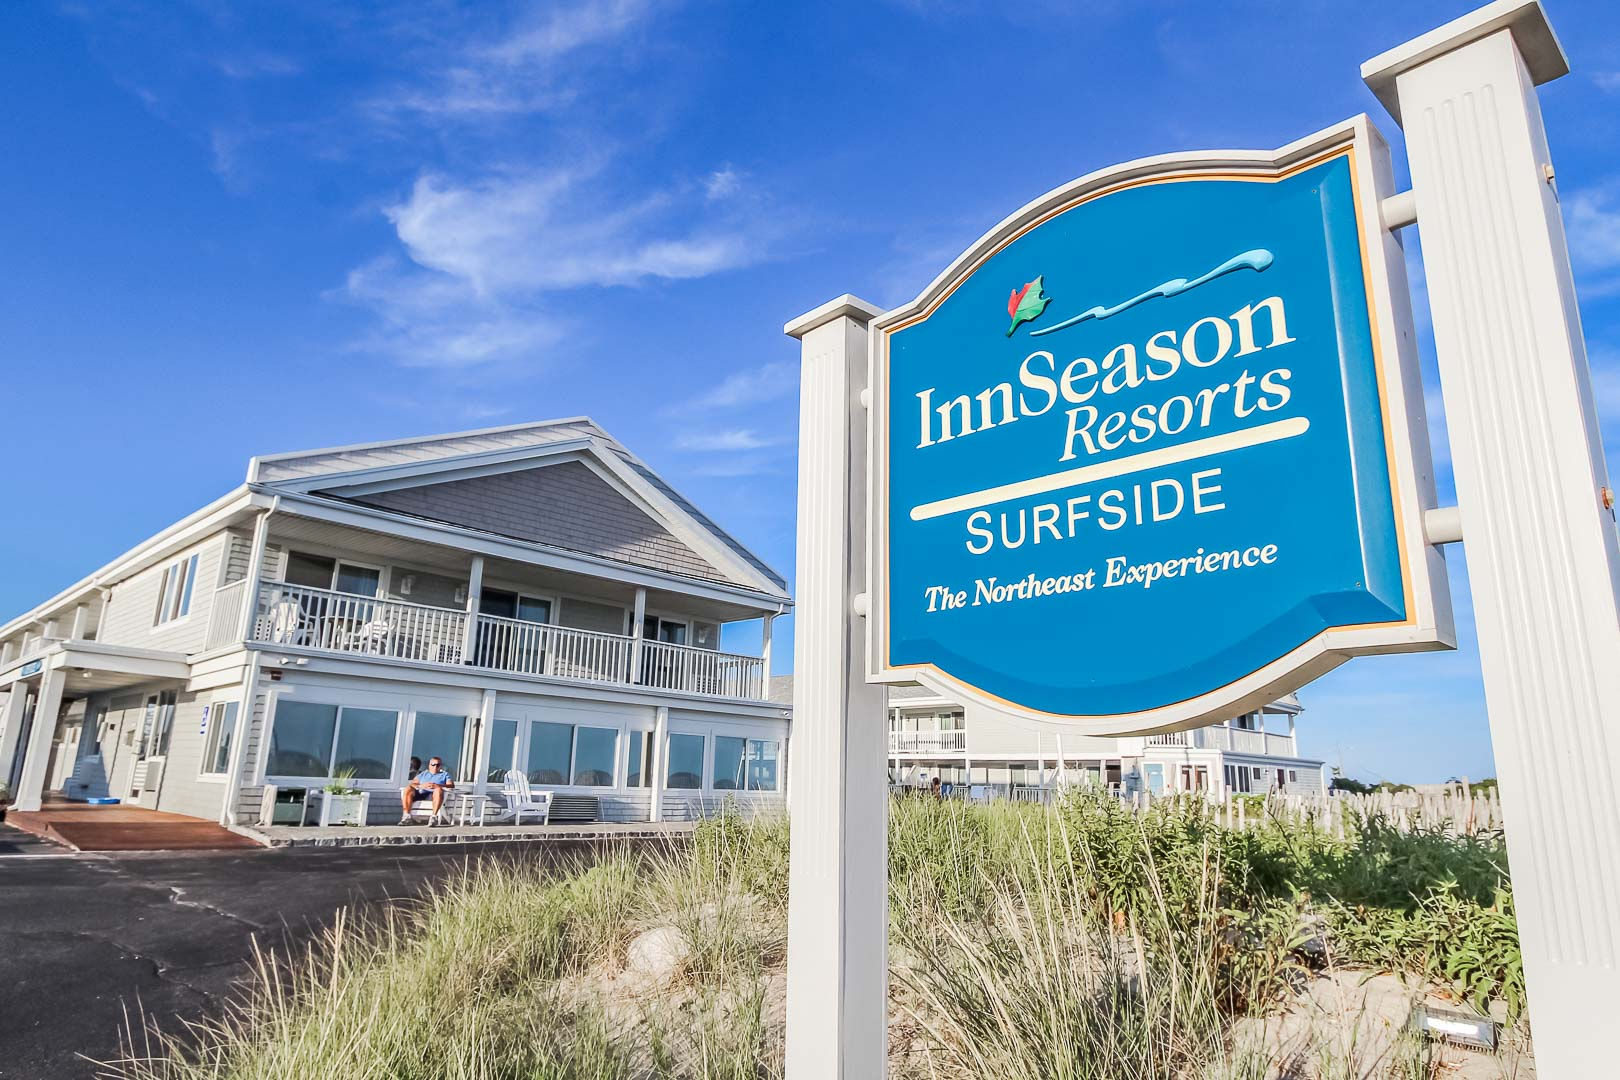 Surfside Resort Signage